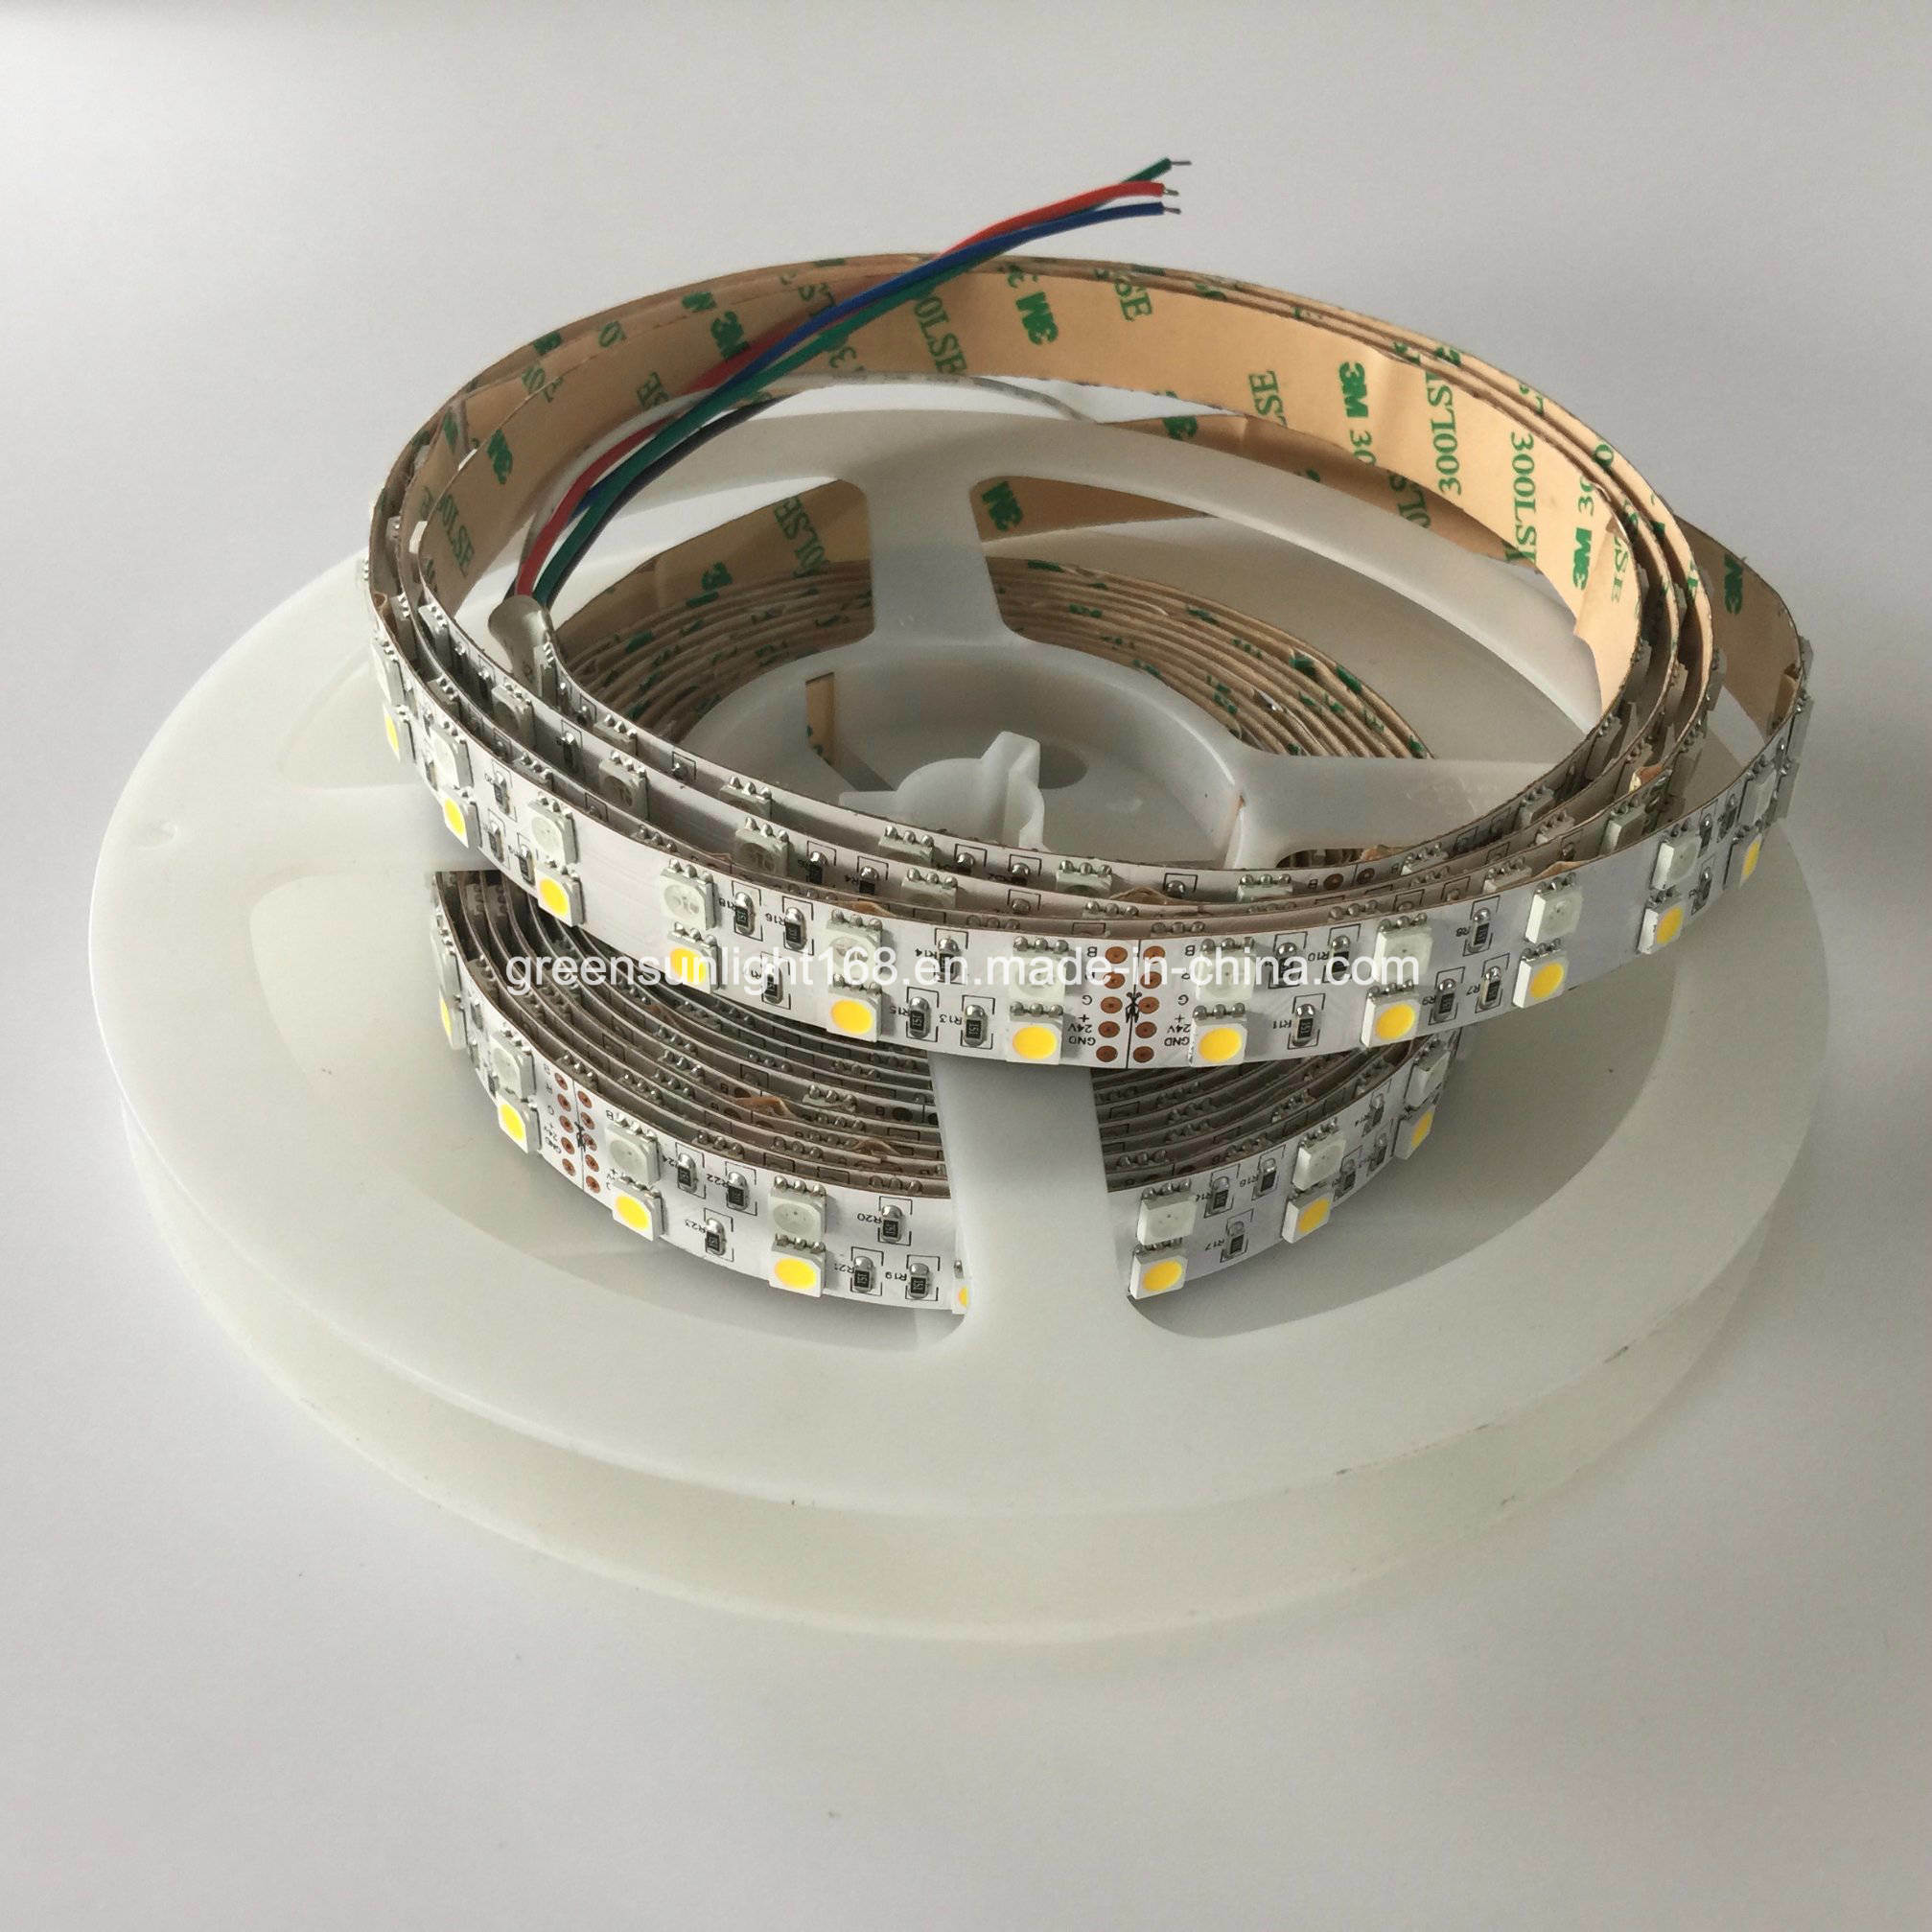 OEM Produce LED Strip for Car Headlight